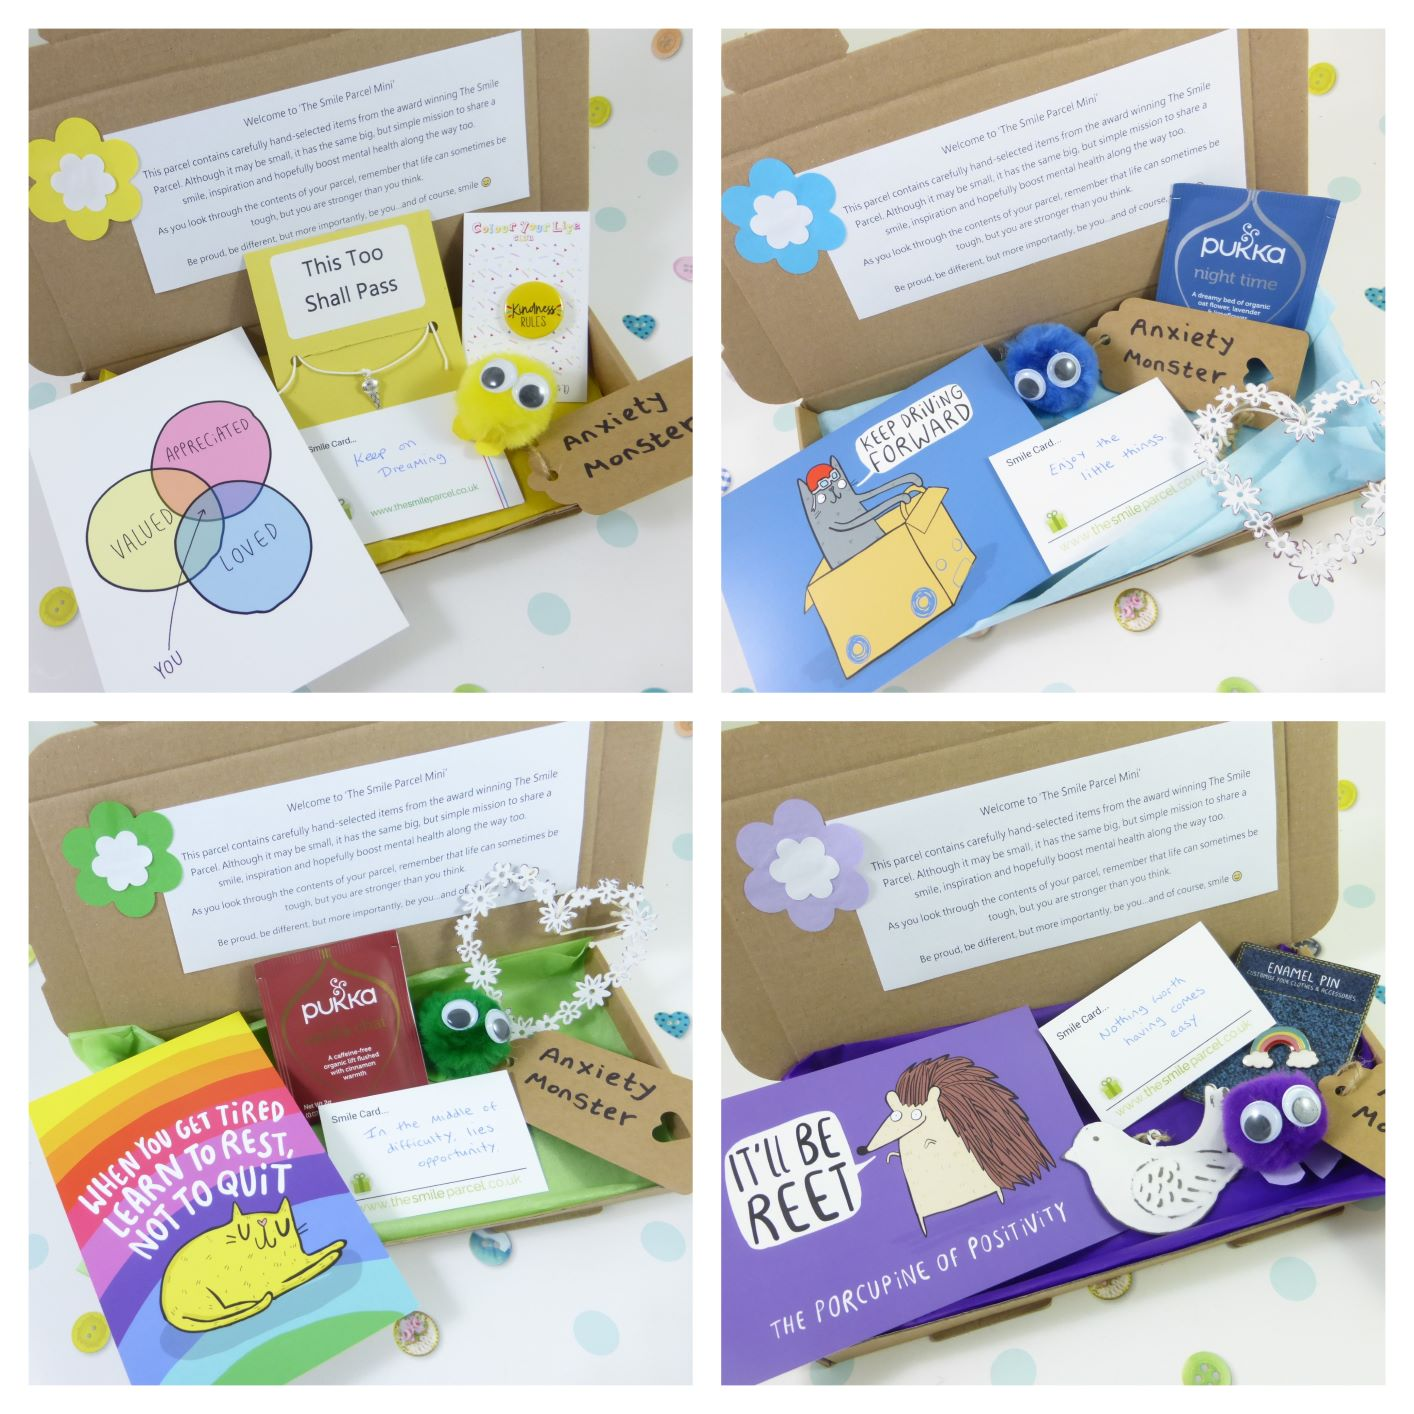 Letterbox Friendly, Pick Me Up Gift, The Smile Parcel Mini, Happy Post, Mental Health Gift, Anxiety Box Kind Shop